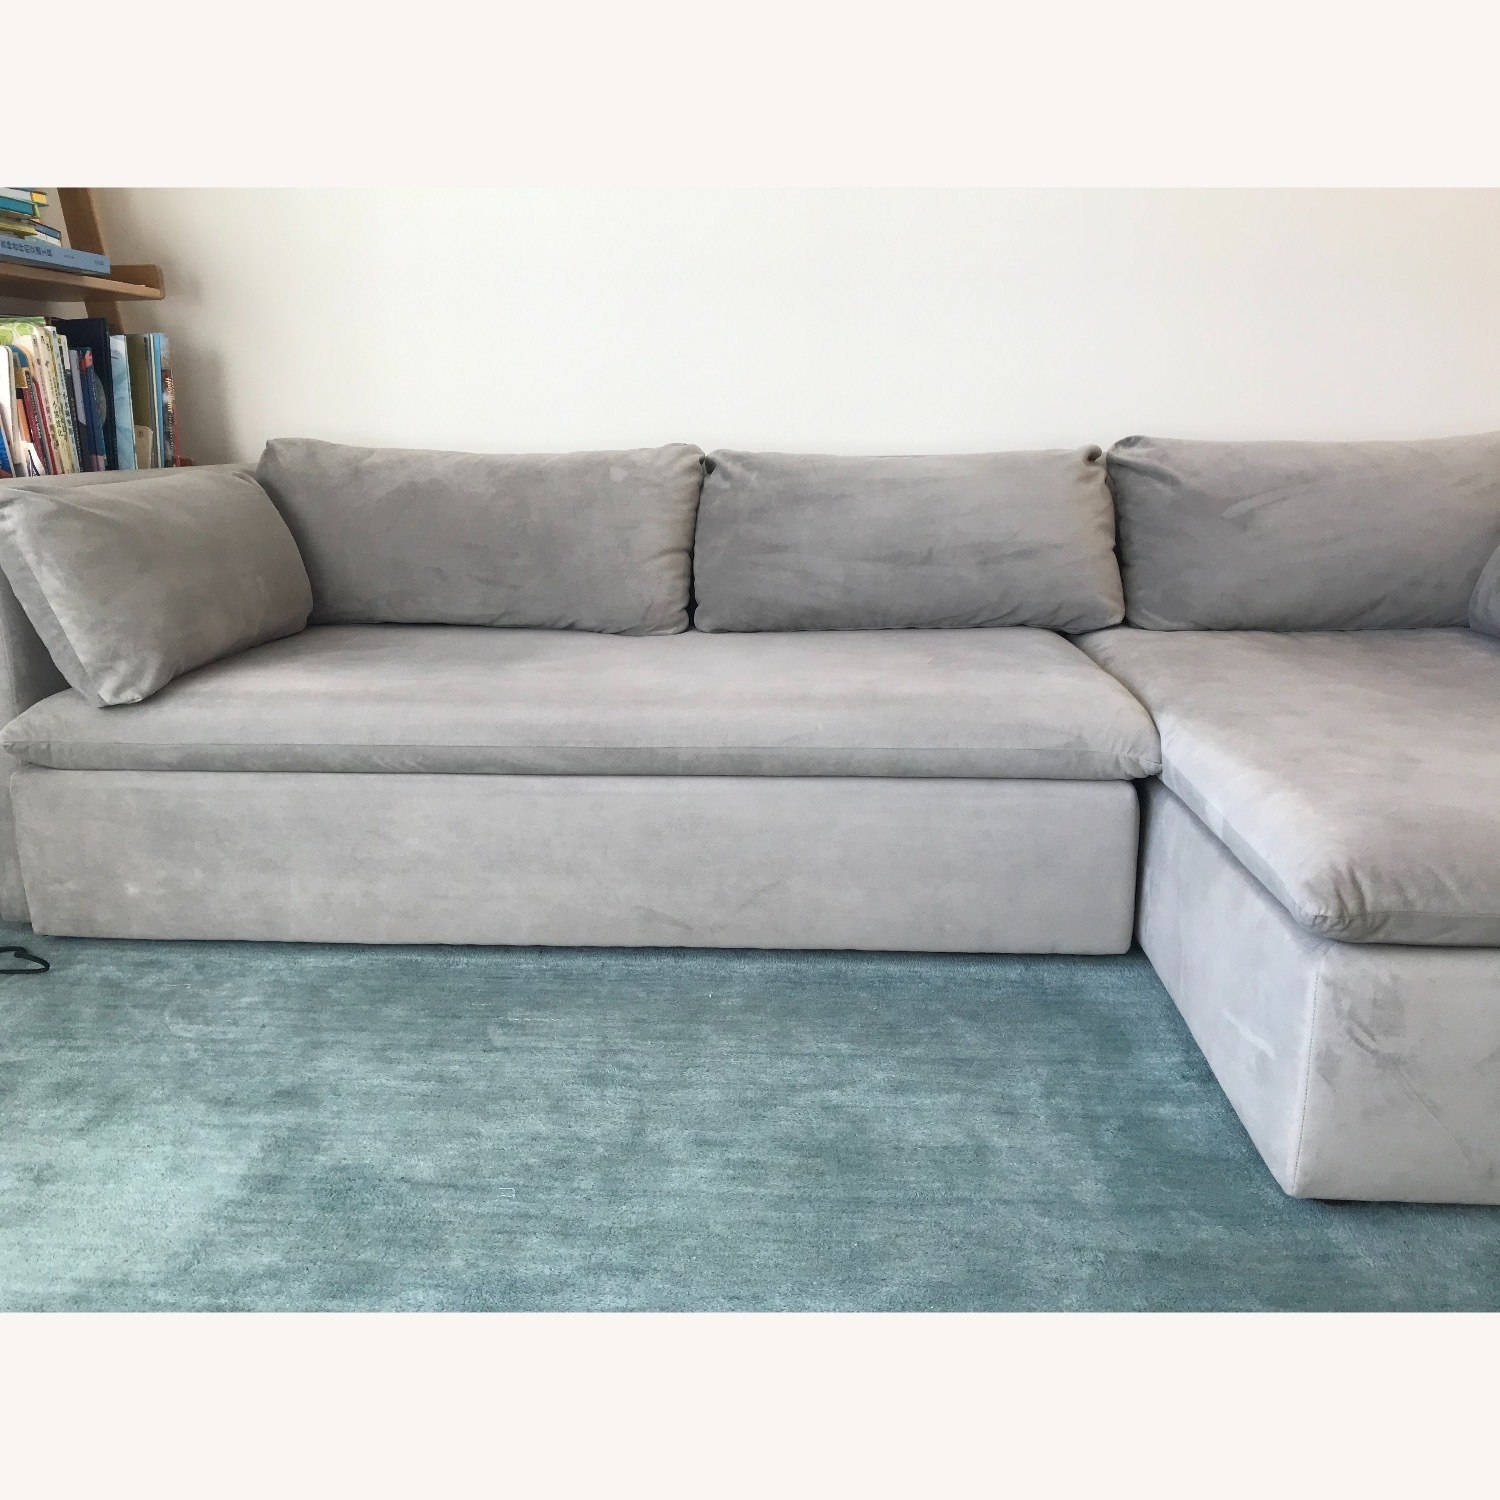 West Elm Shelter Sectional Sofa Dove Gray - image-1